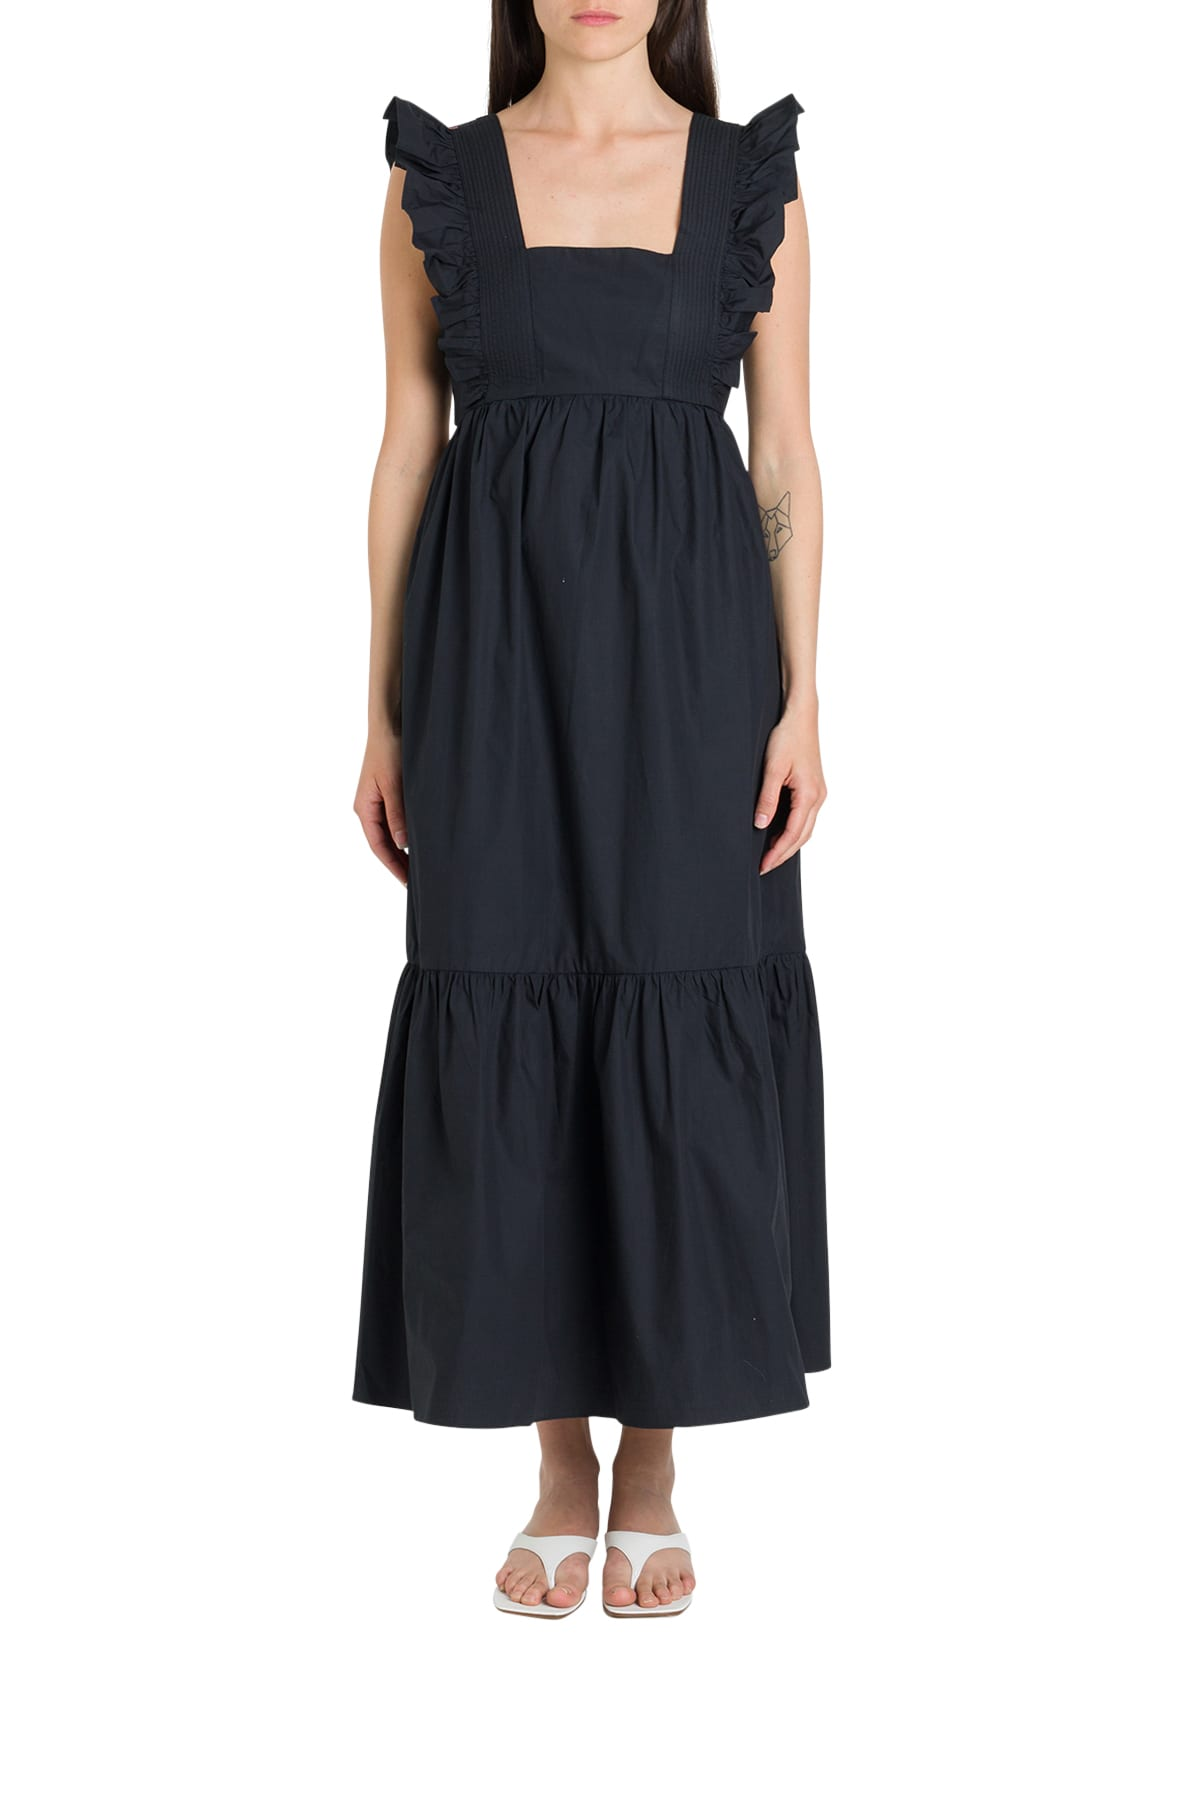 Buy self-portrait Black Cotton Poplin Midi Dress online, shop self-portrait with free shipping